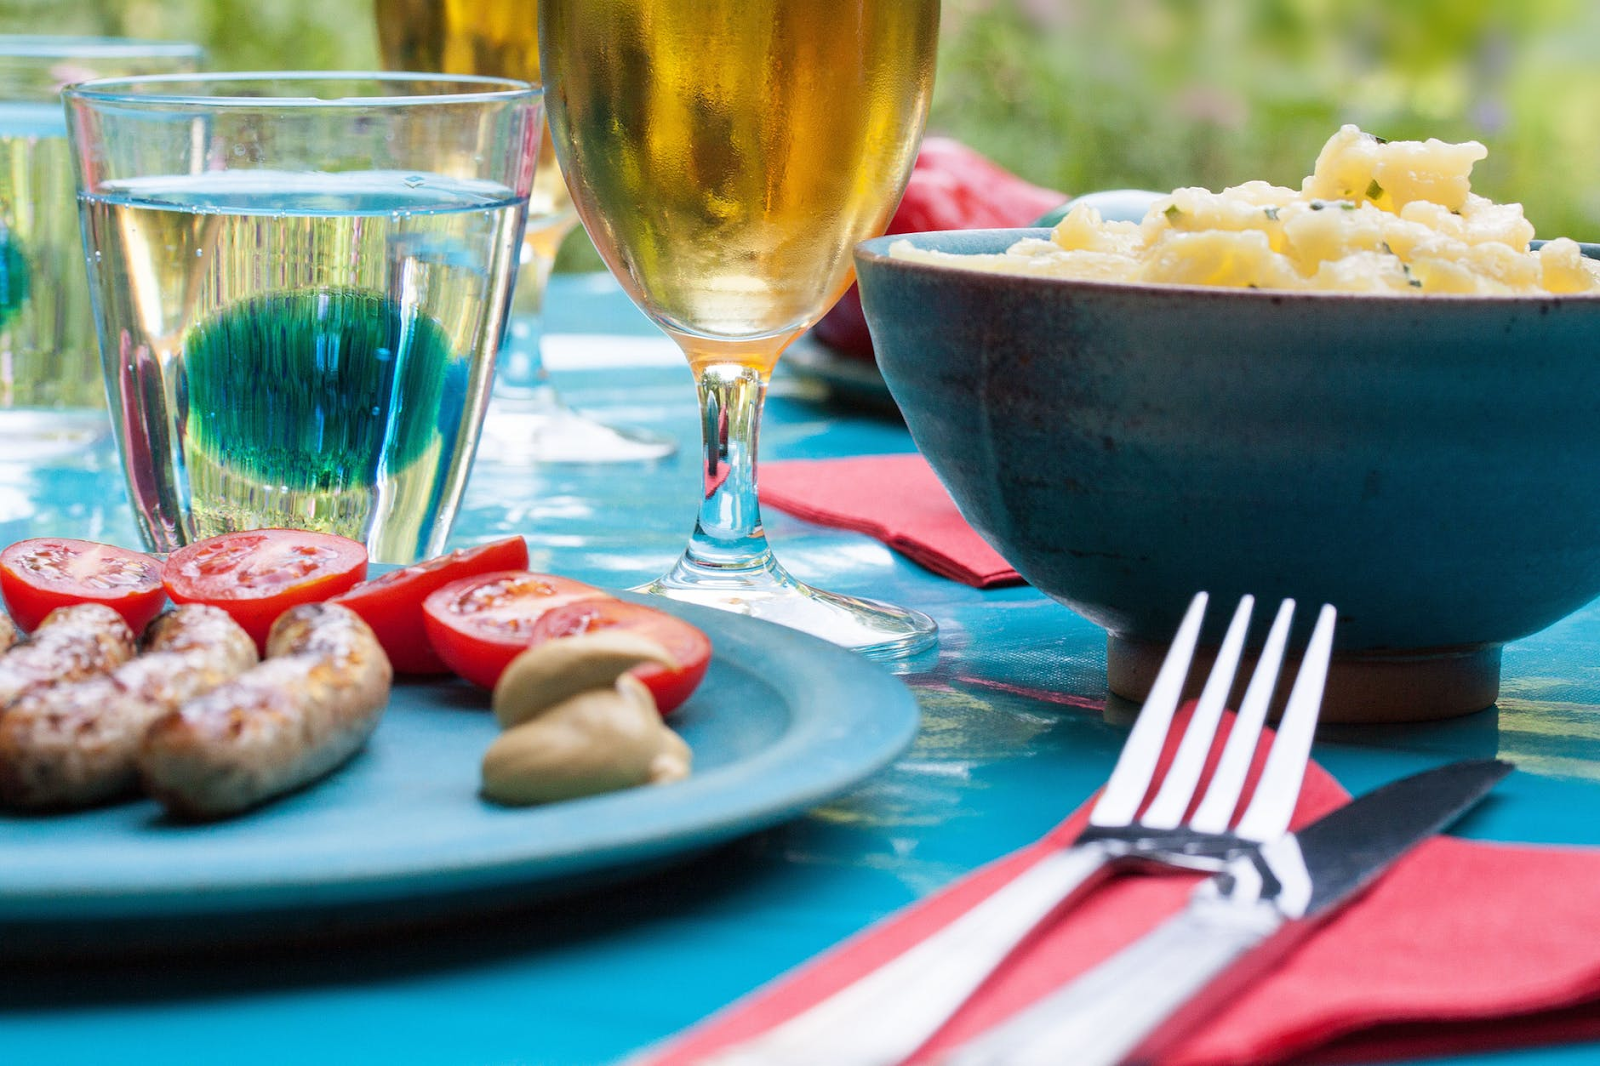 A table showing a spread of summery foods and drinks